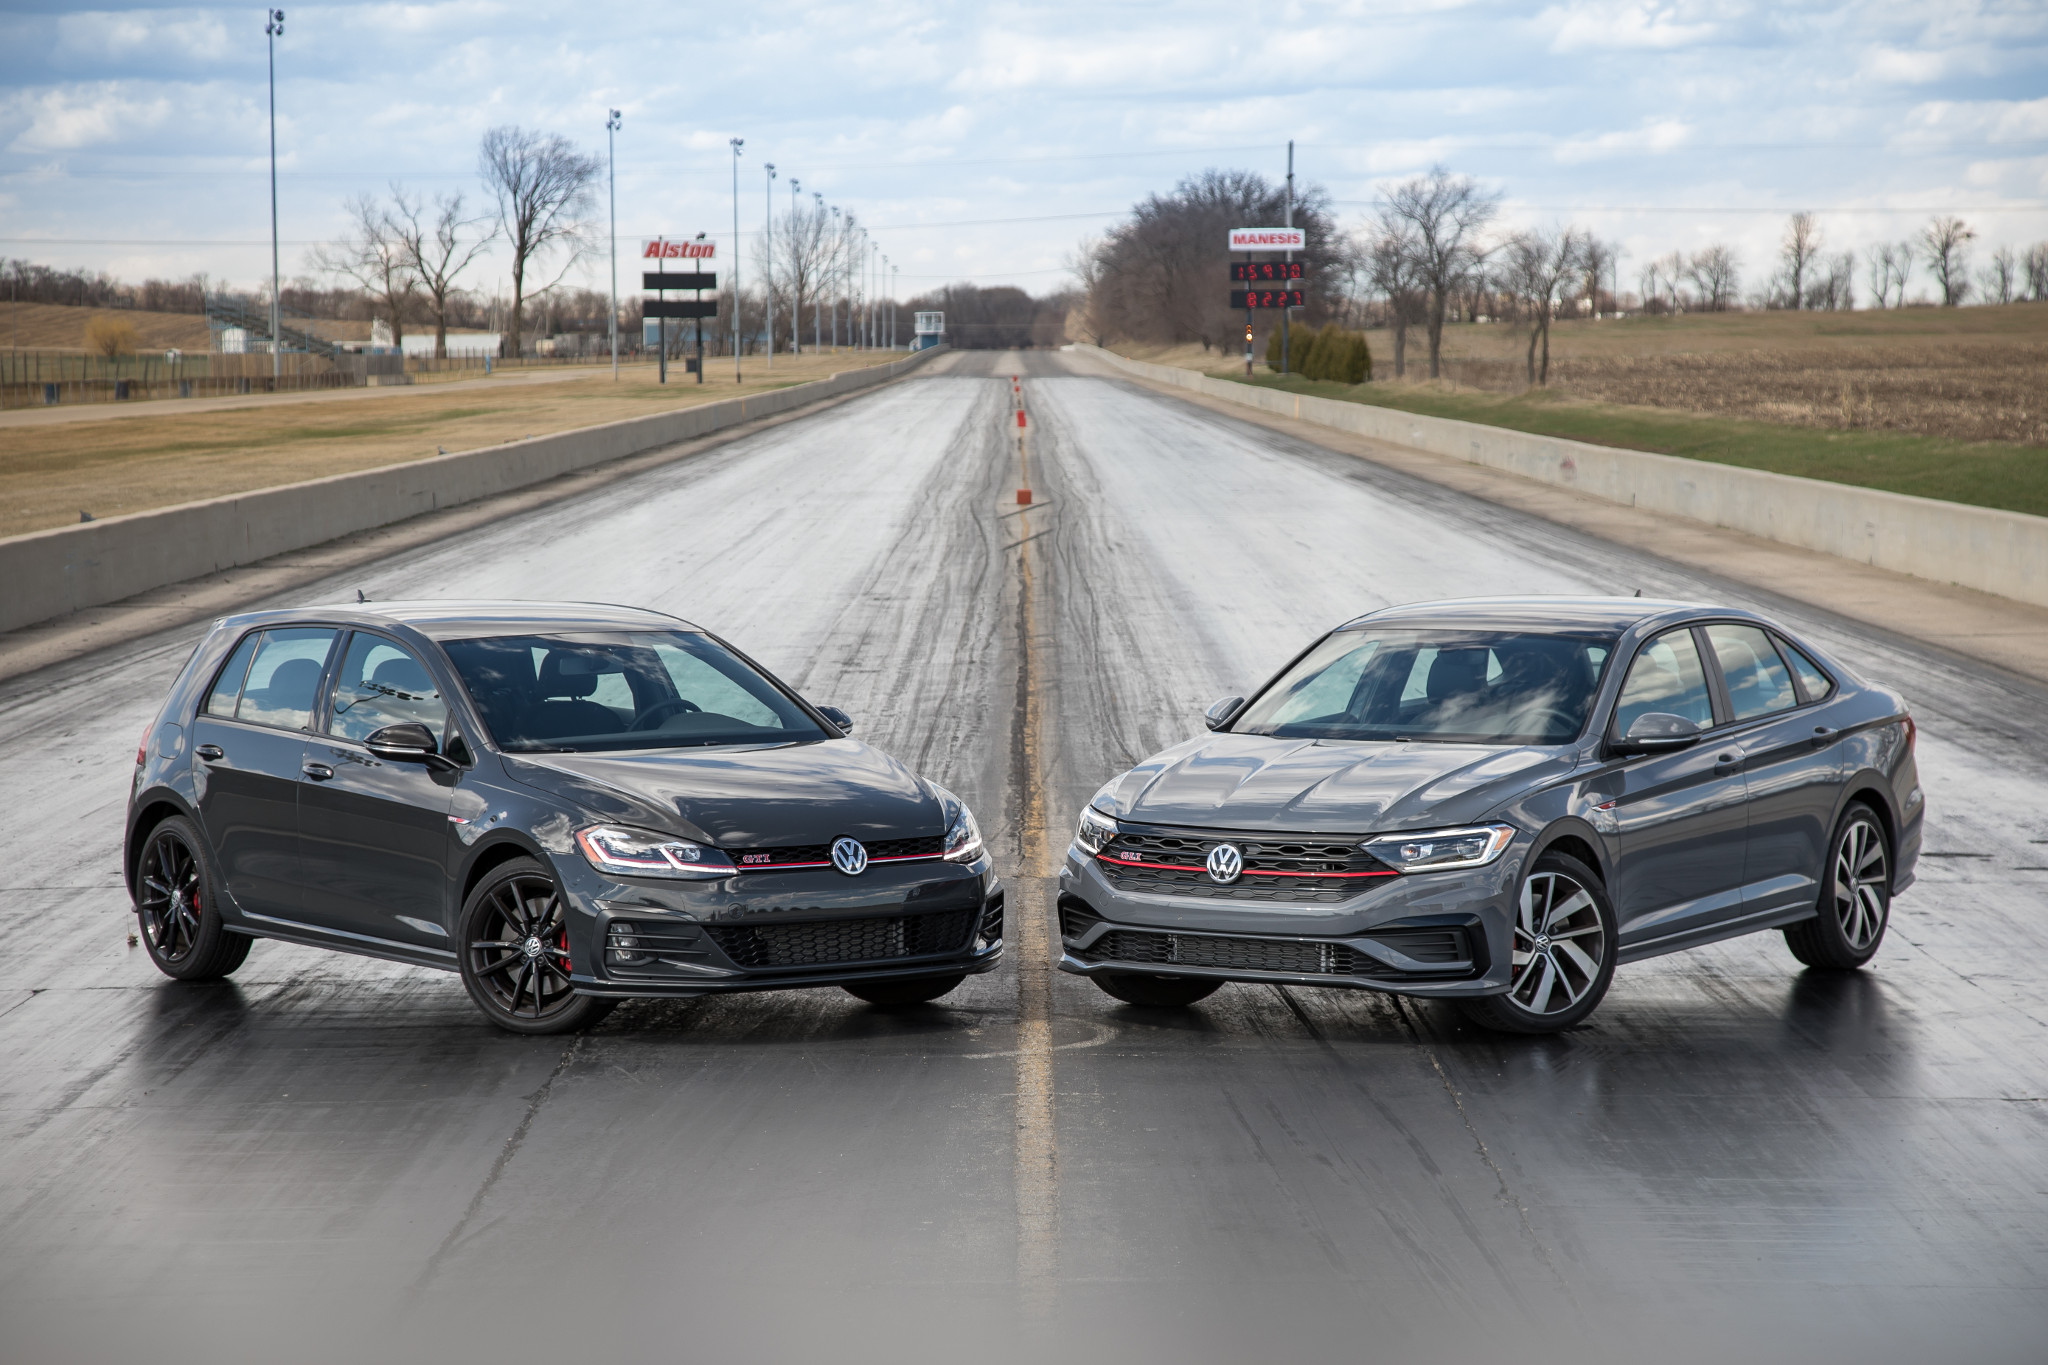 01-volkswagen-jetta-gli-and-golf-gti-2019-angle--drag-strip--exterior--front--grey--head-to-head.jpg